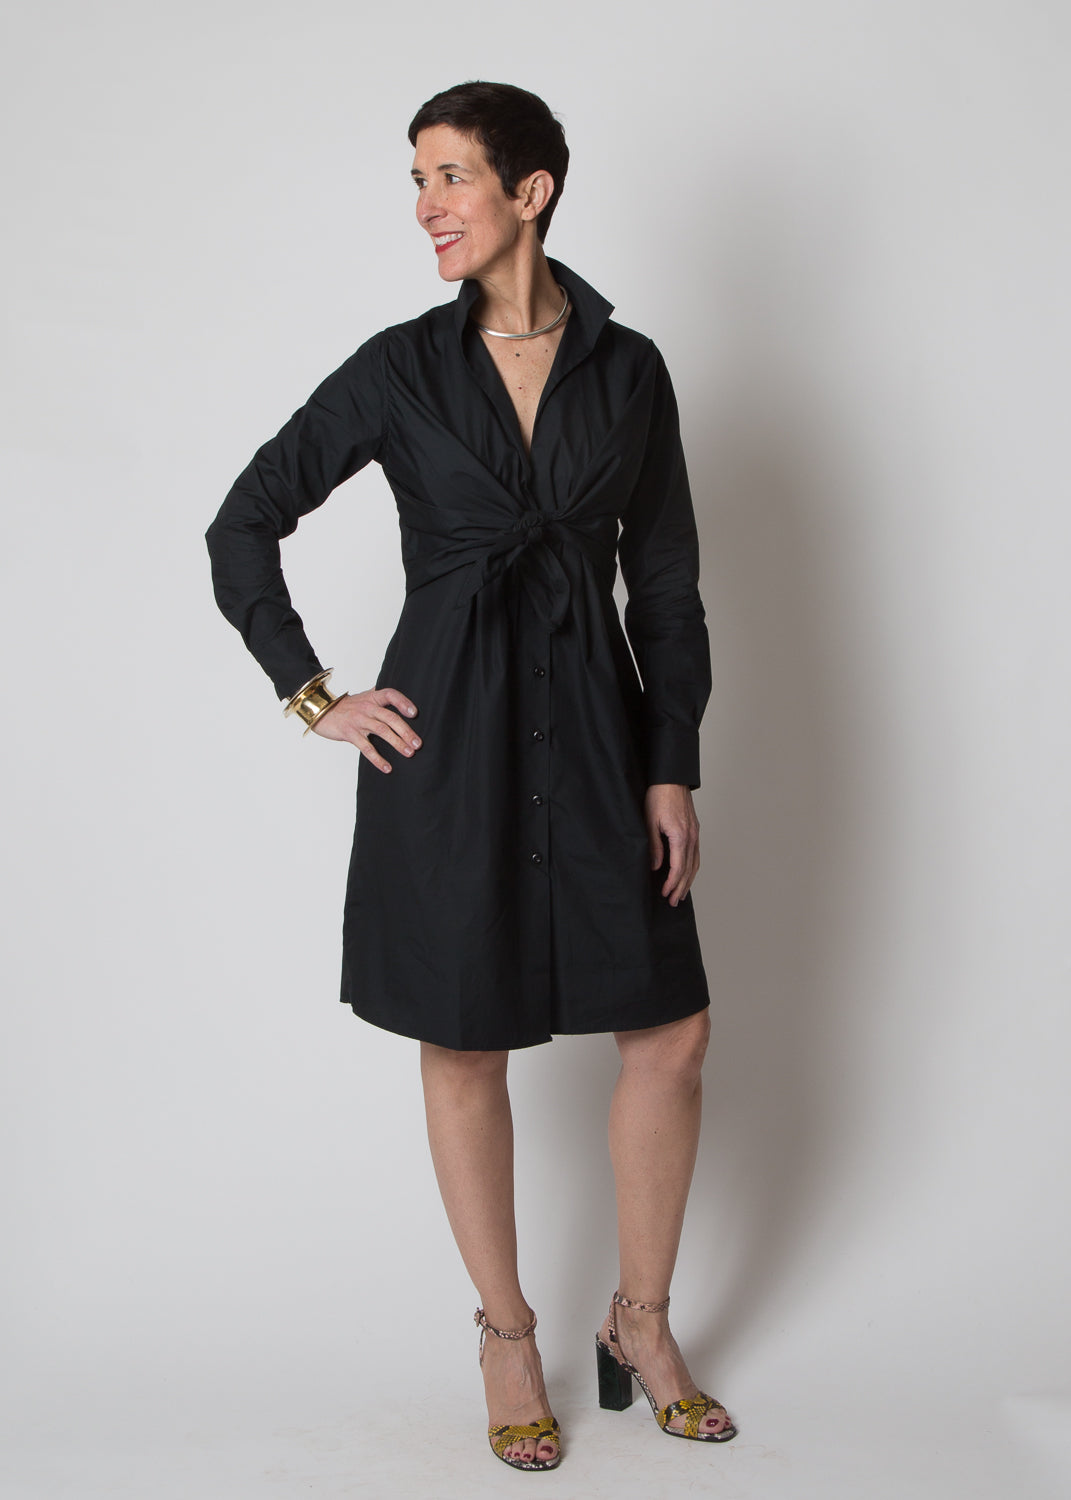 SBJ Austin Lauri Dress Black